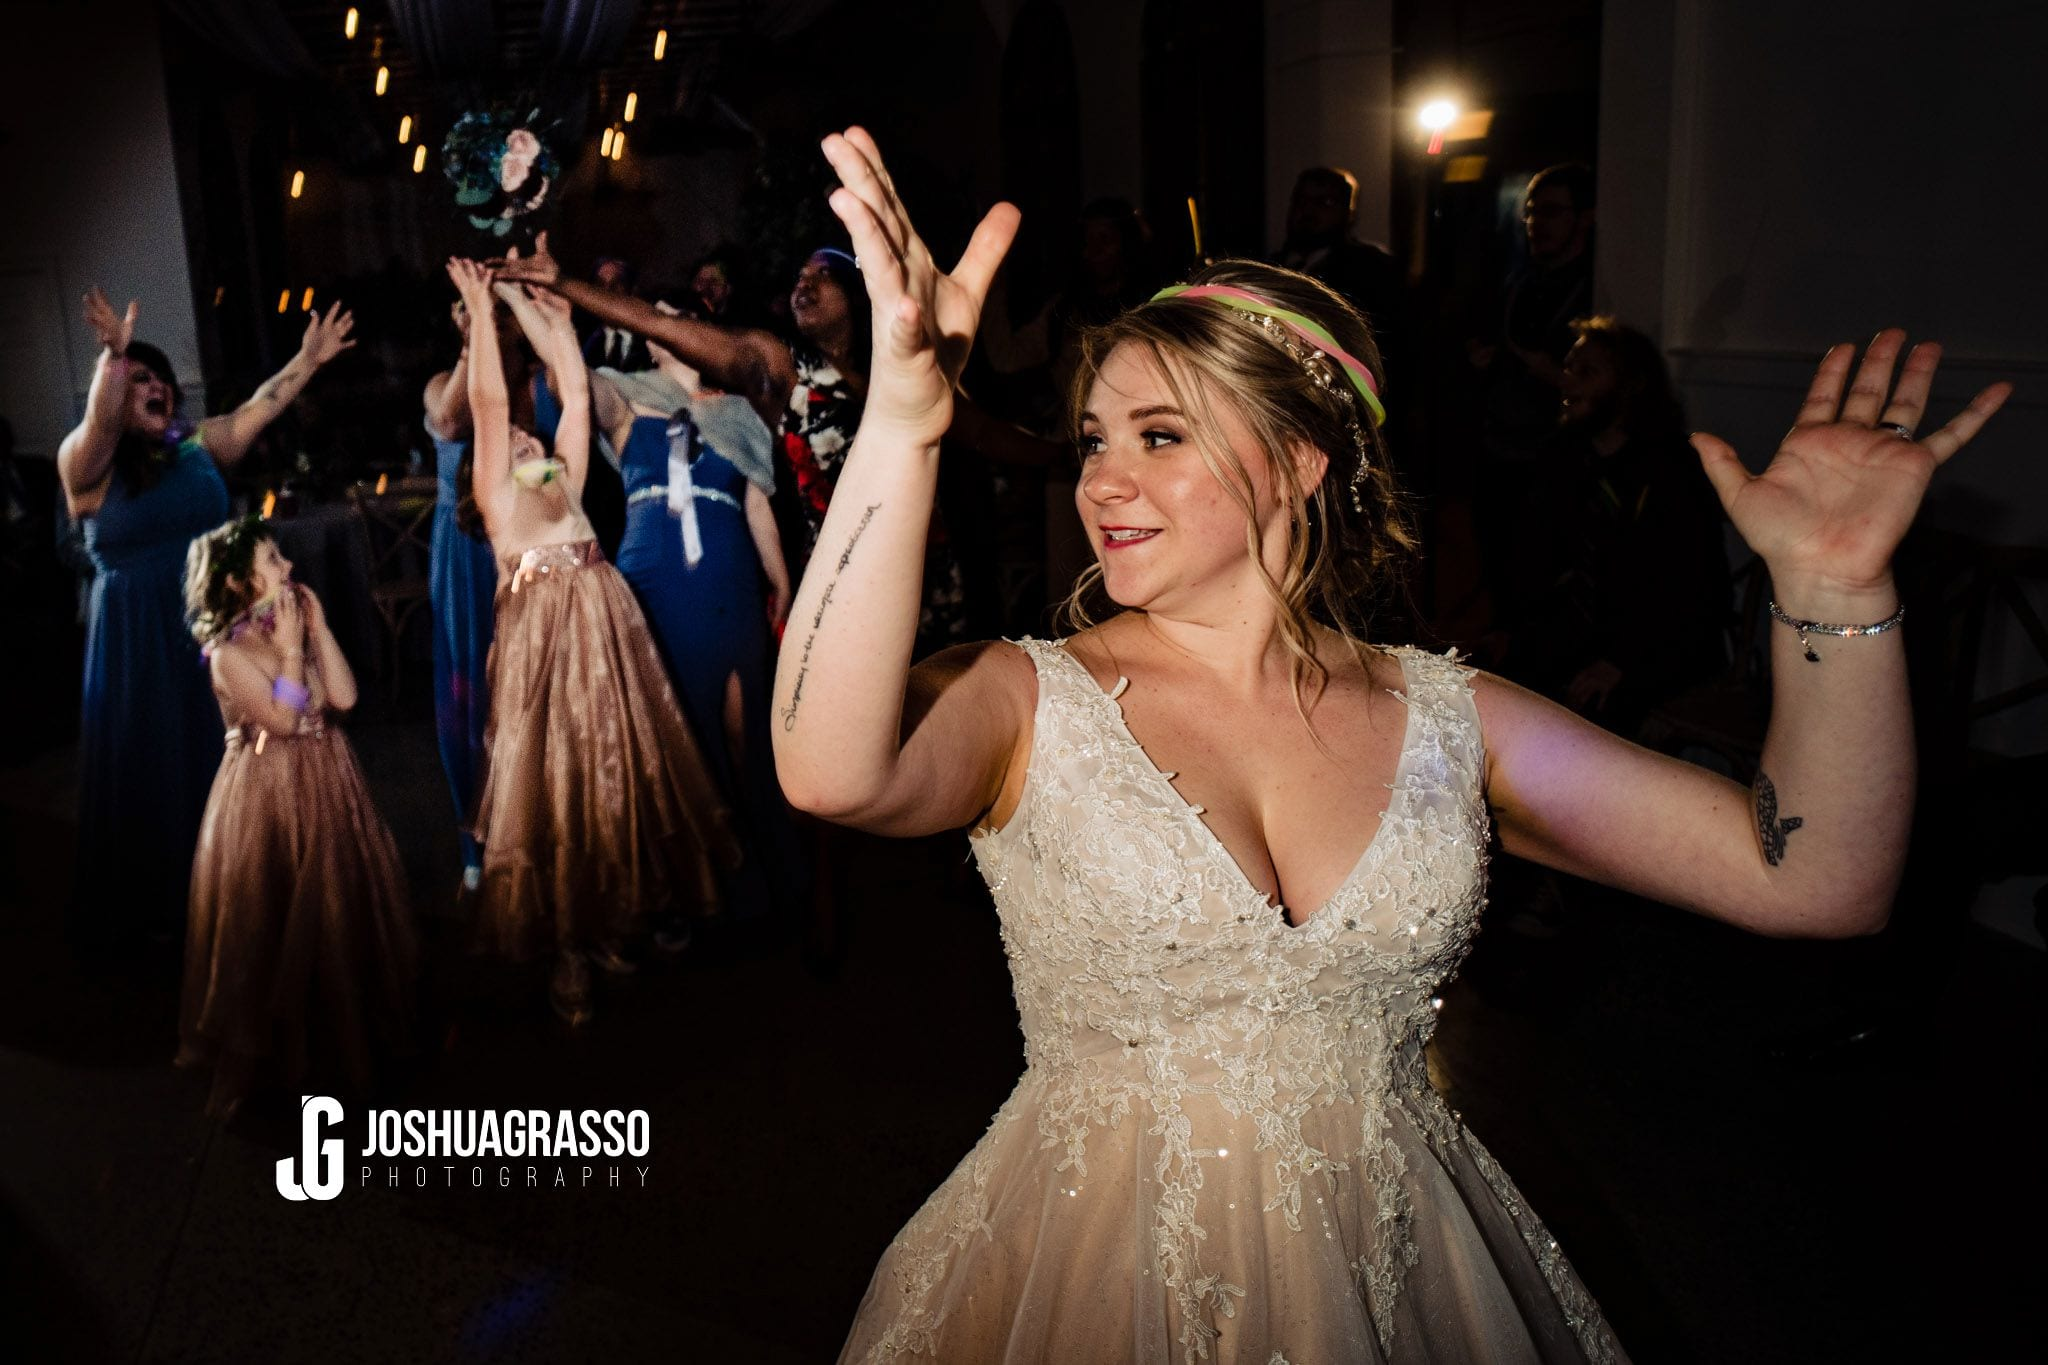 Bride tossing her boutique during the wedding reception at Walnut Hill Farm wedding venue.